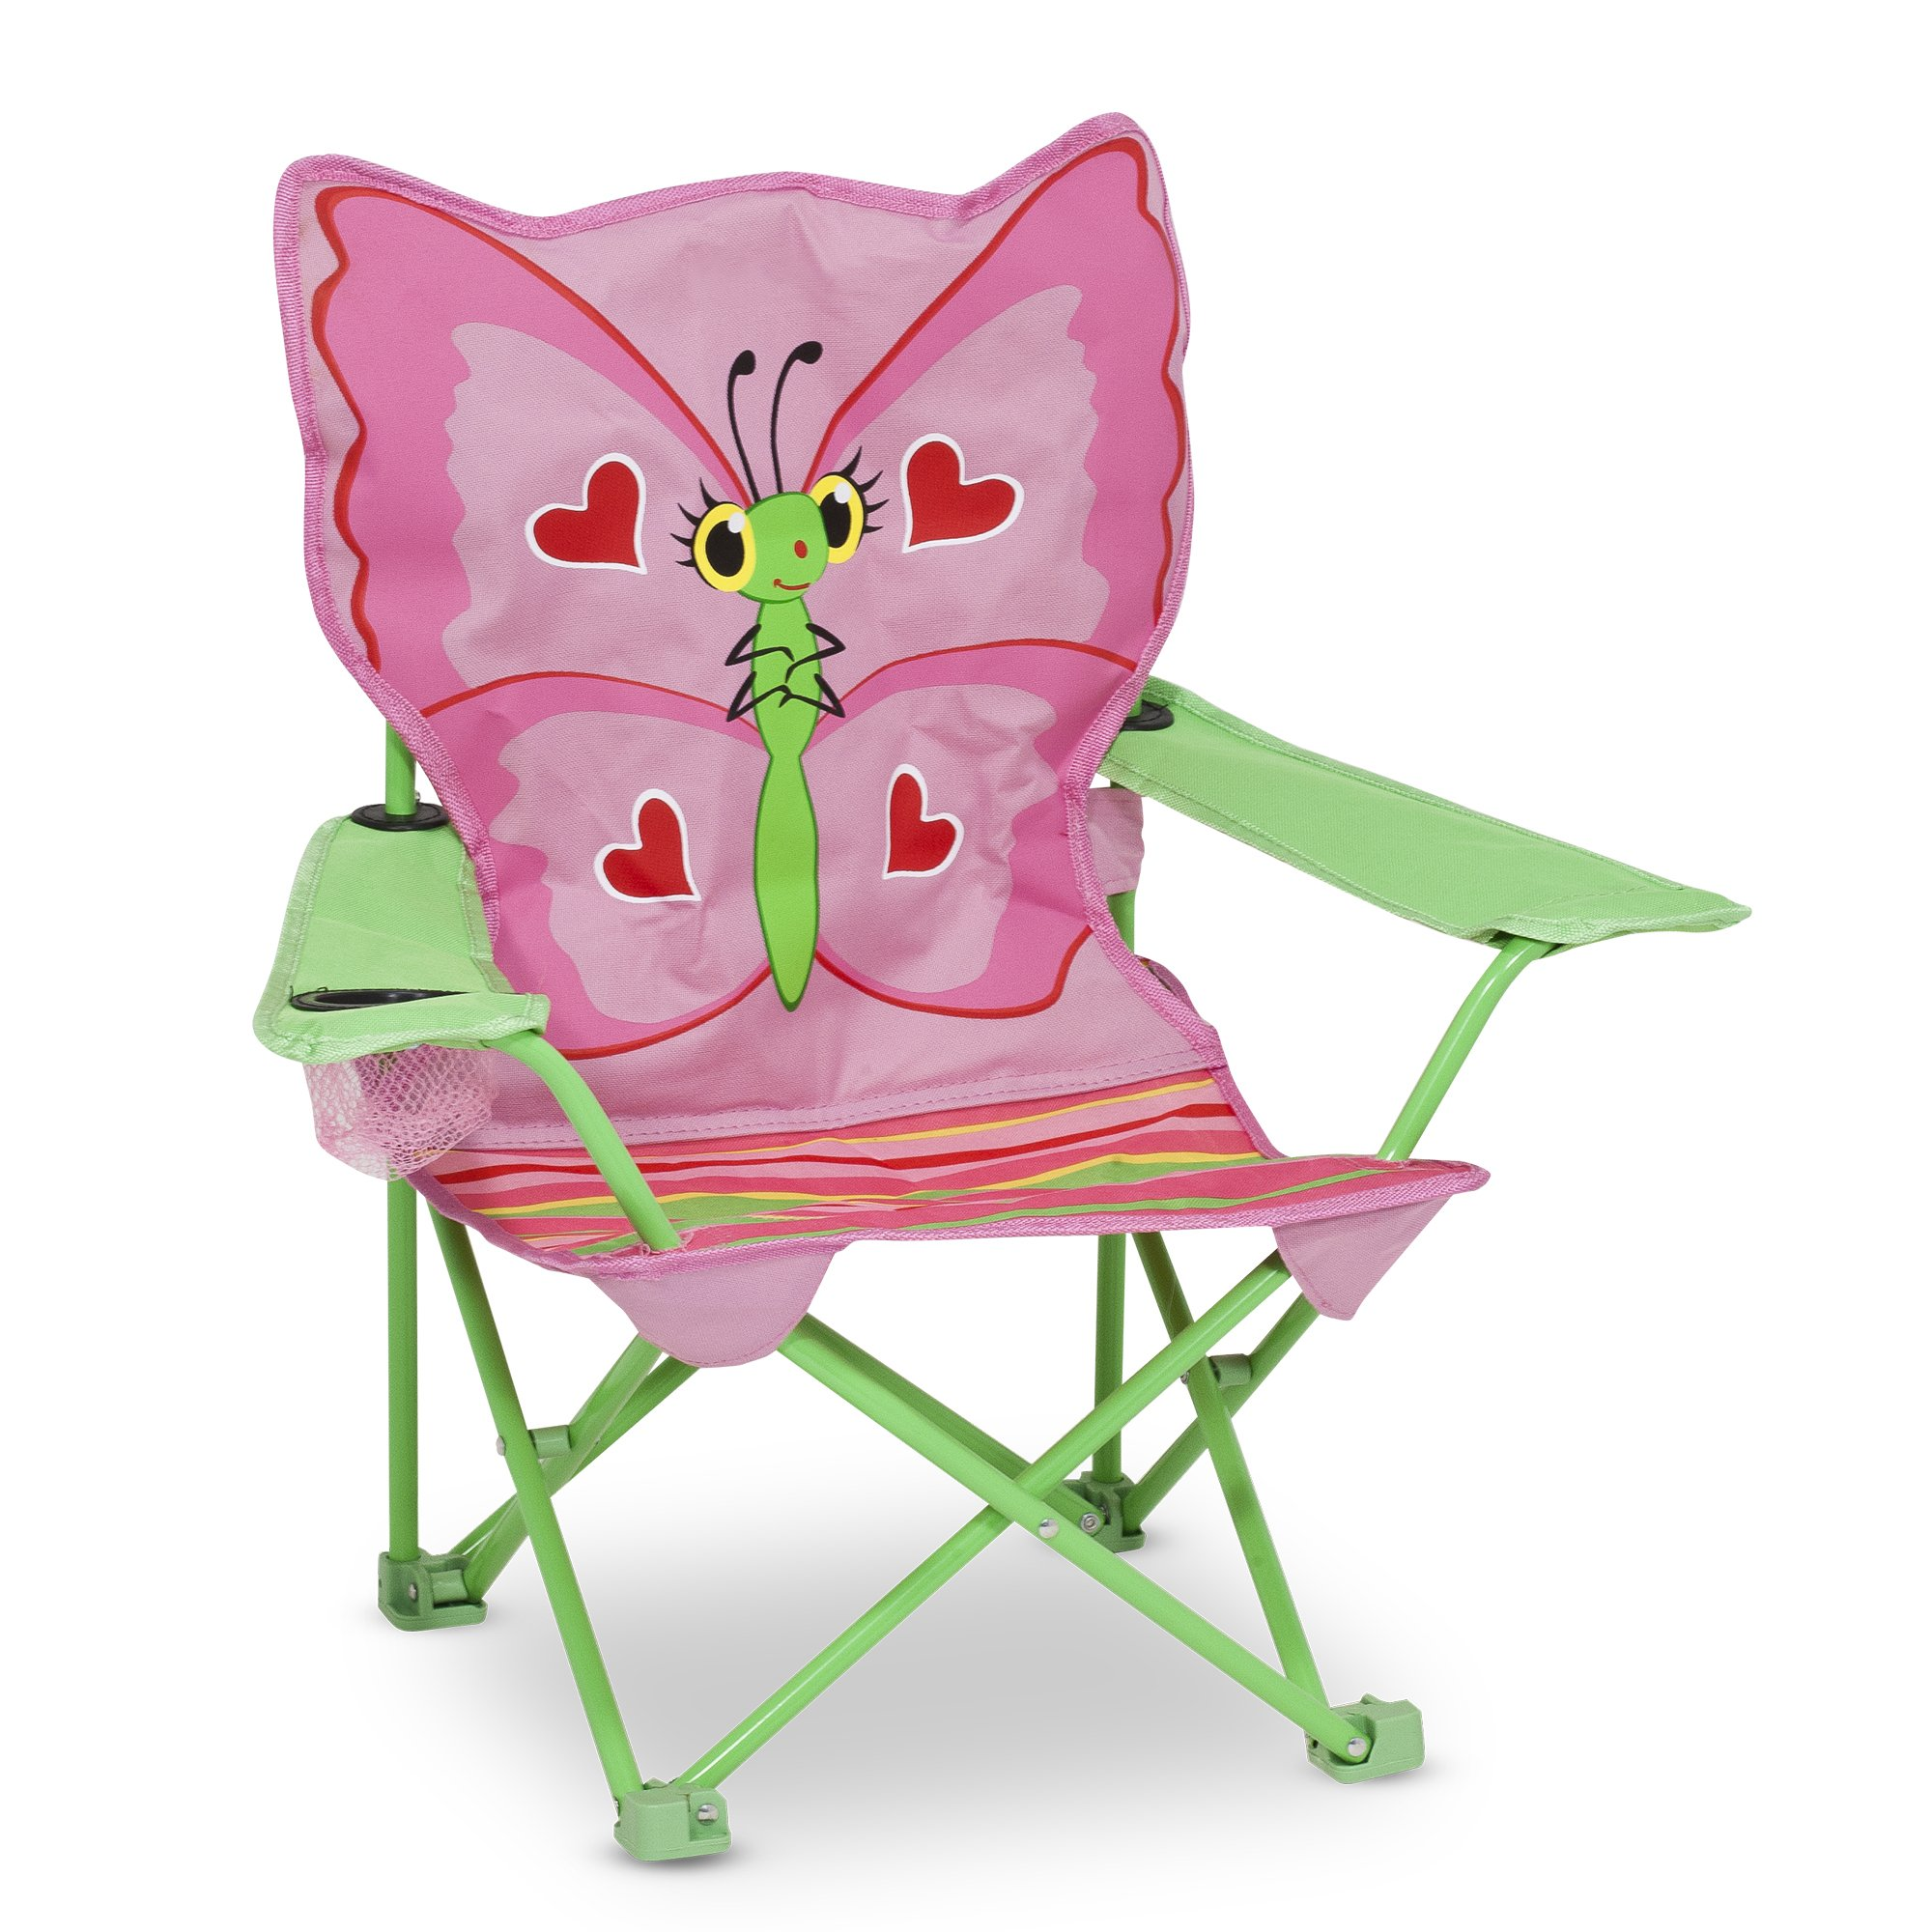 Melissa & Doug Personalized Sunny Patch Bella Butterfly Outdoor Folding Lawn & Camping Chair by Melissa & Doug (Image #2)